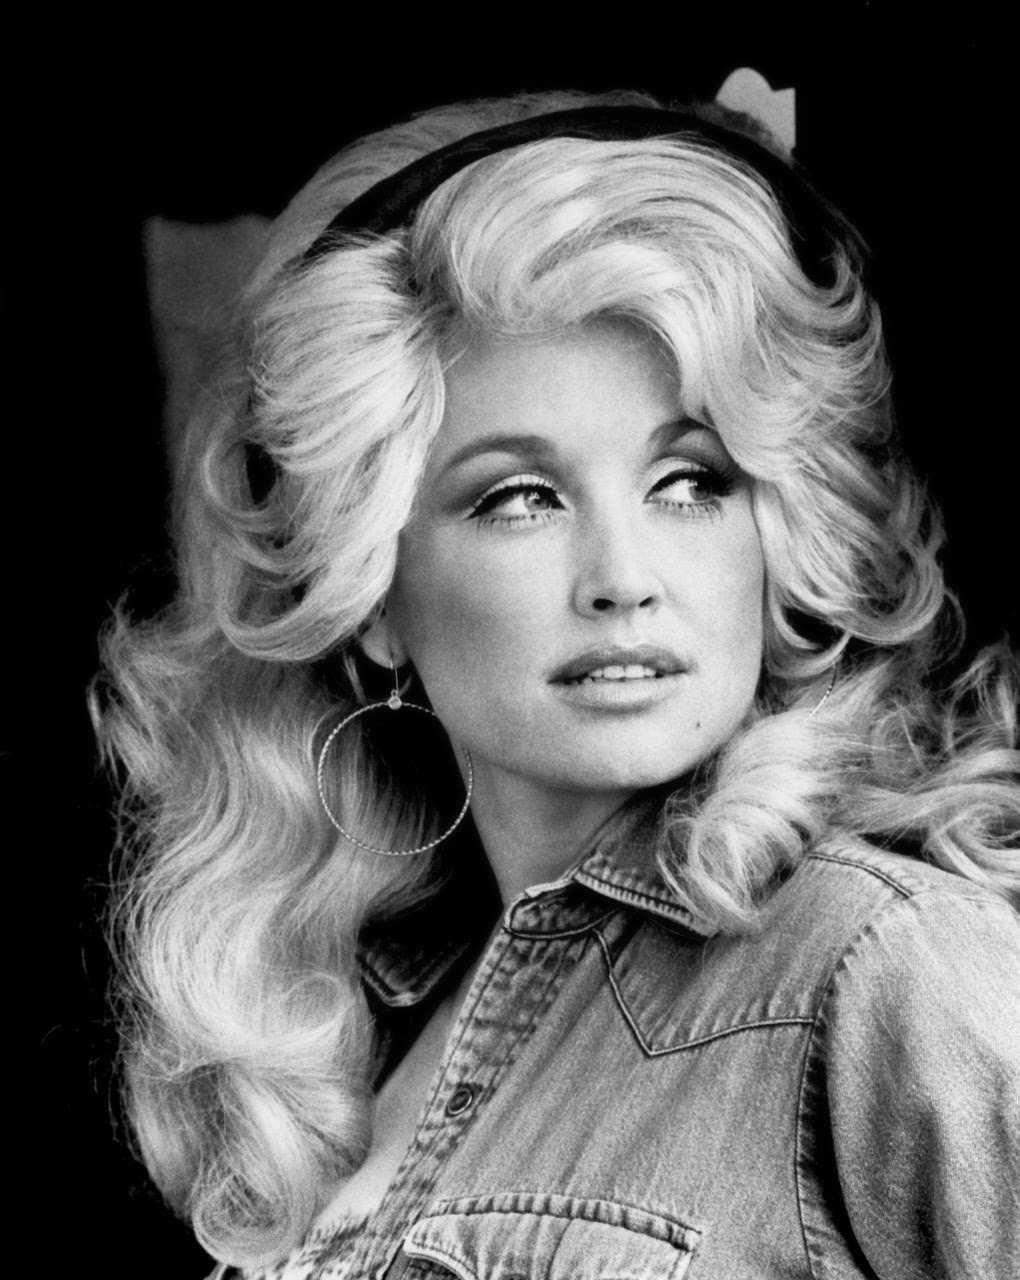 "<a href=""http://pitchfork.com/thepitch/1325-dolly-parton-is-for-everyone/"" target=""_blank"">PITCHFORK</a>"